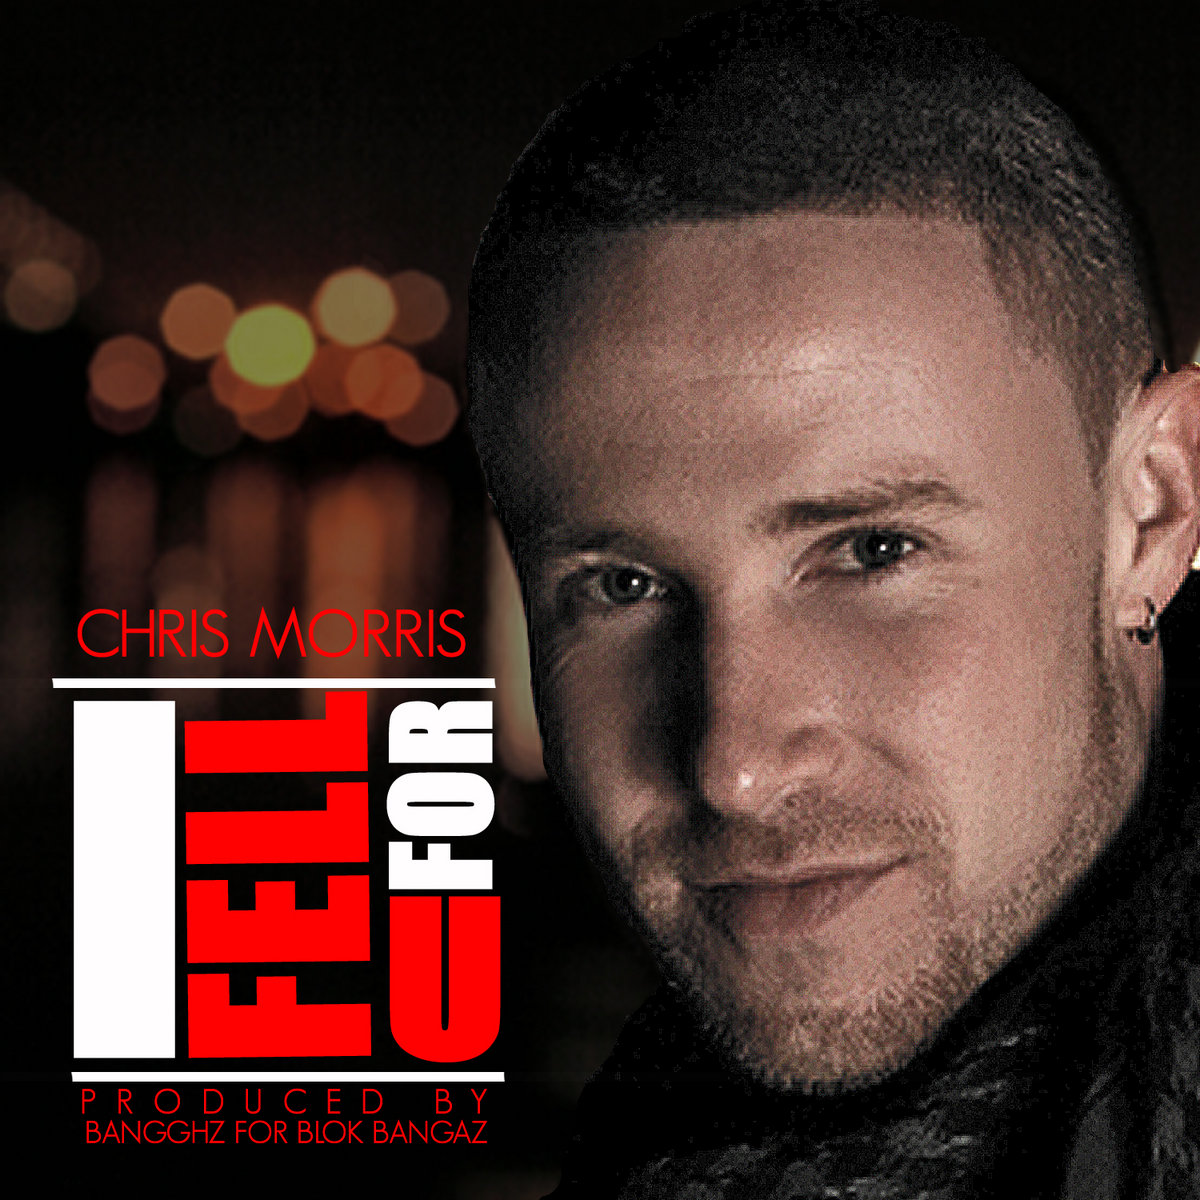 I Fell For U (Single) by Chris Morris